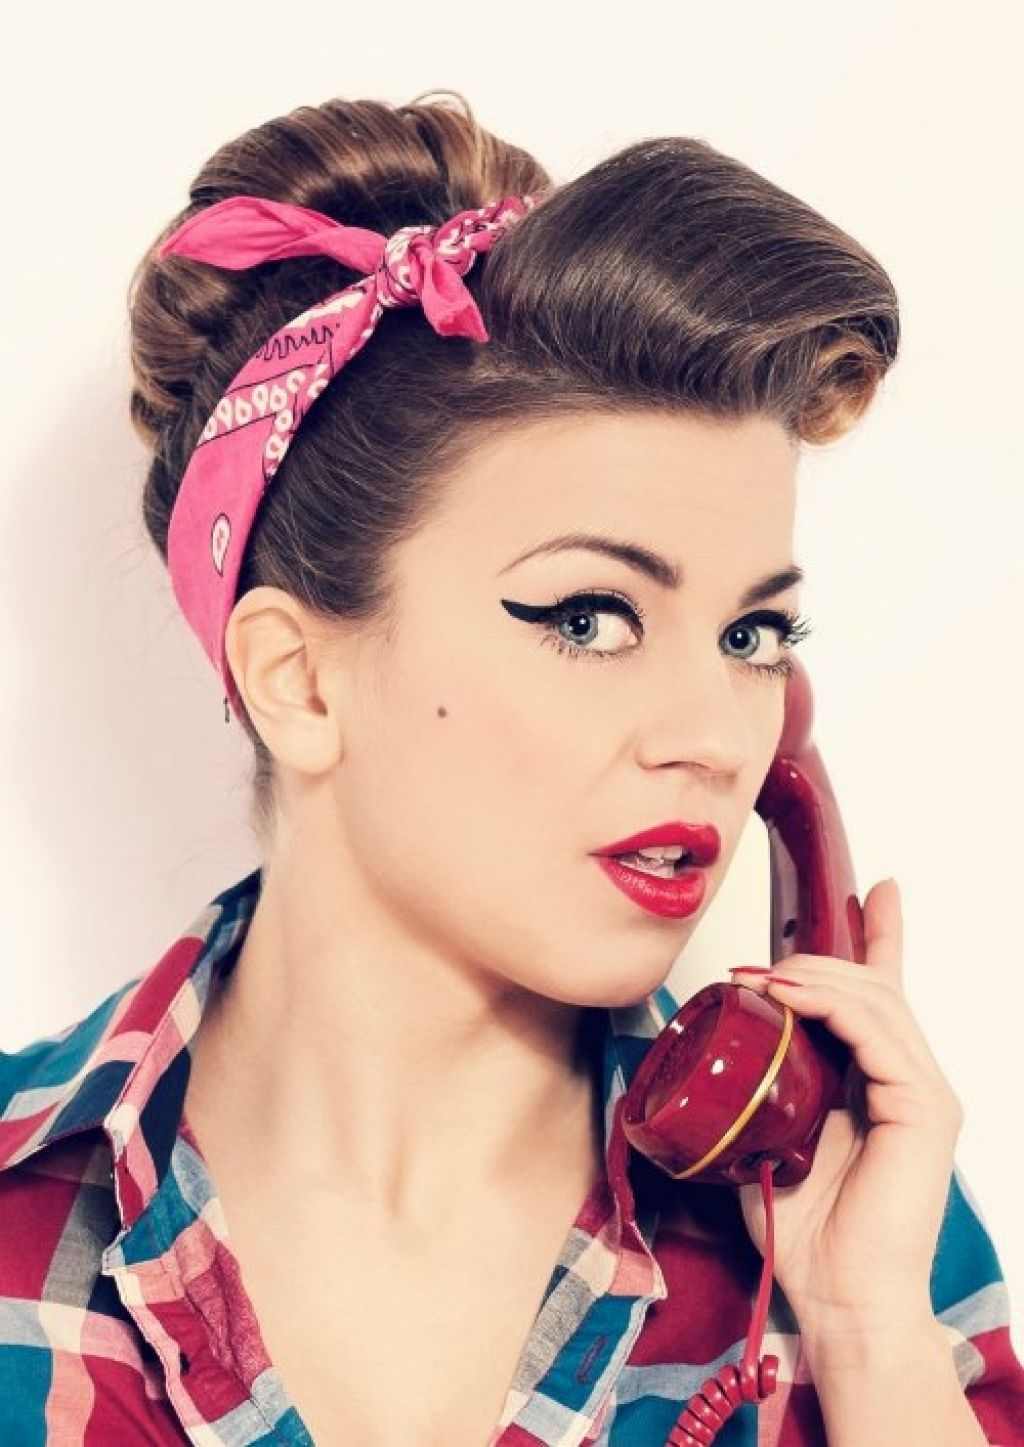 50s hairstyles ideas to look classically beautiful | stuff